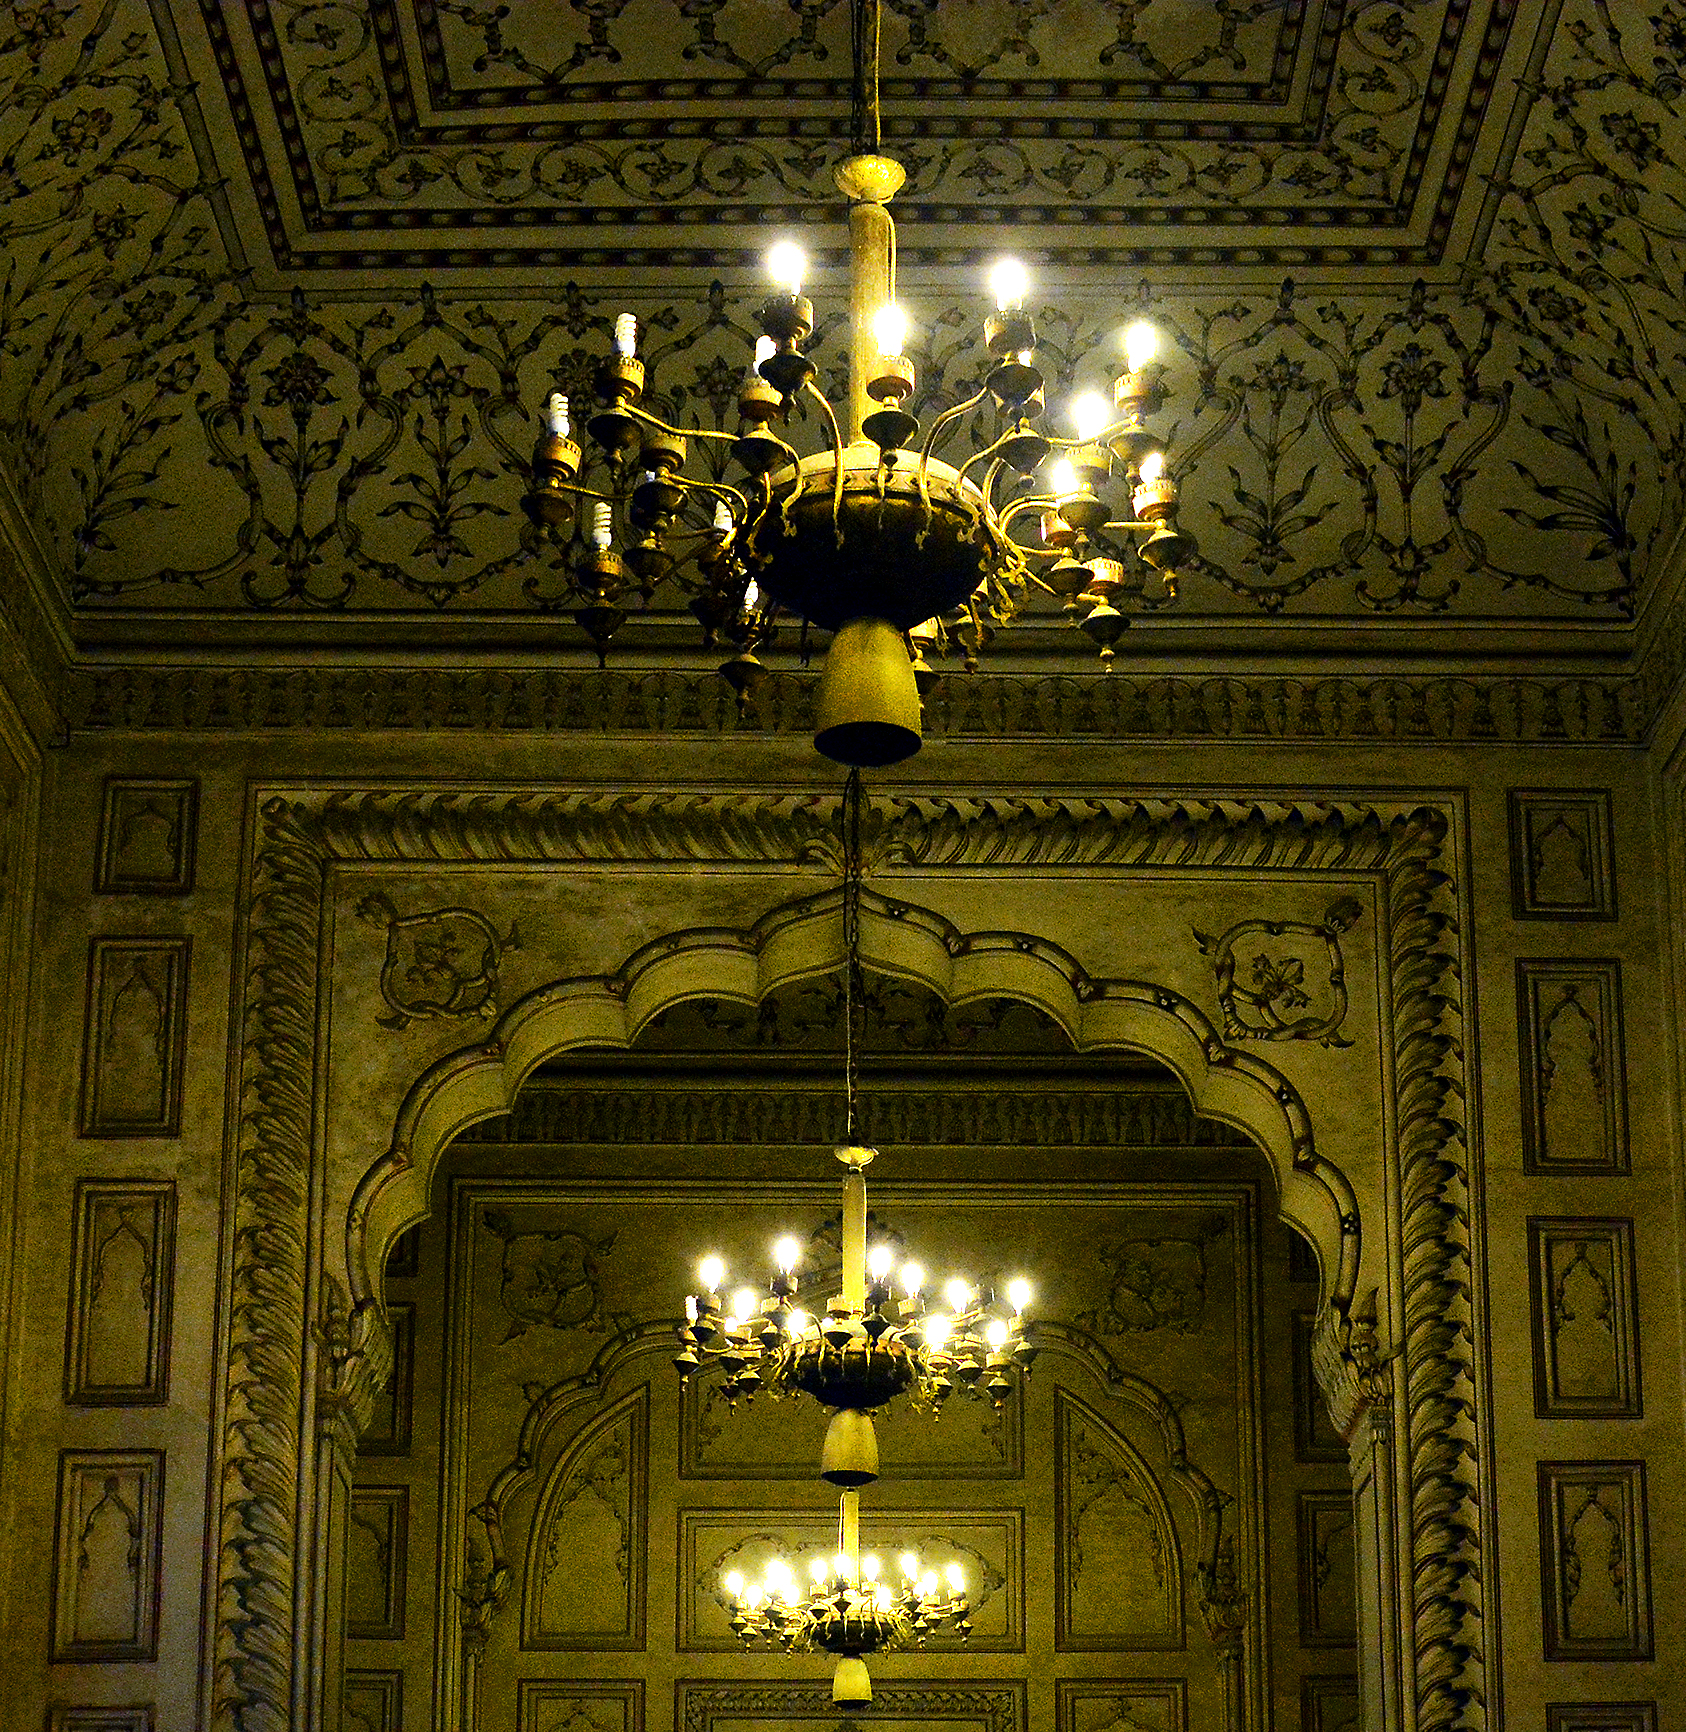 Filethe beautiful interior view with amazing mughal wall art thumbnail for version as of 1112 3 september 2016 arubaitofo Image collections